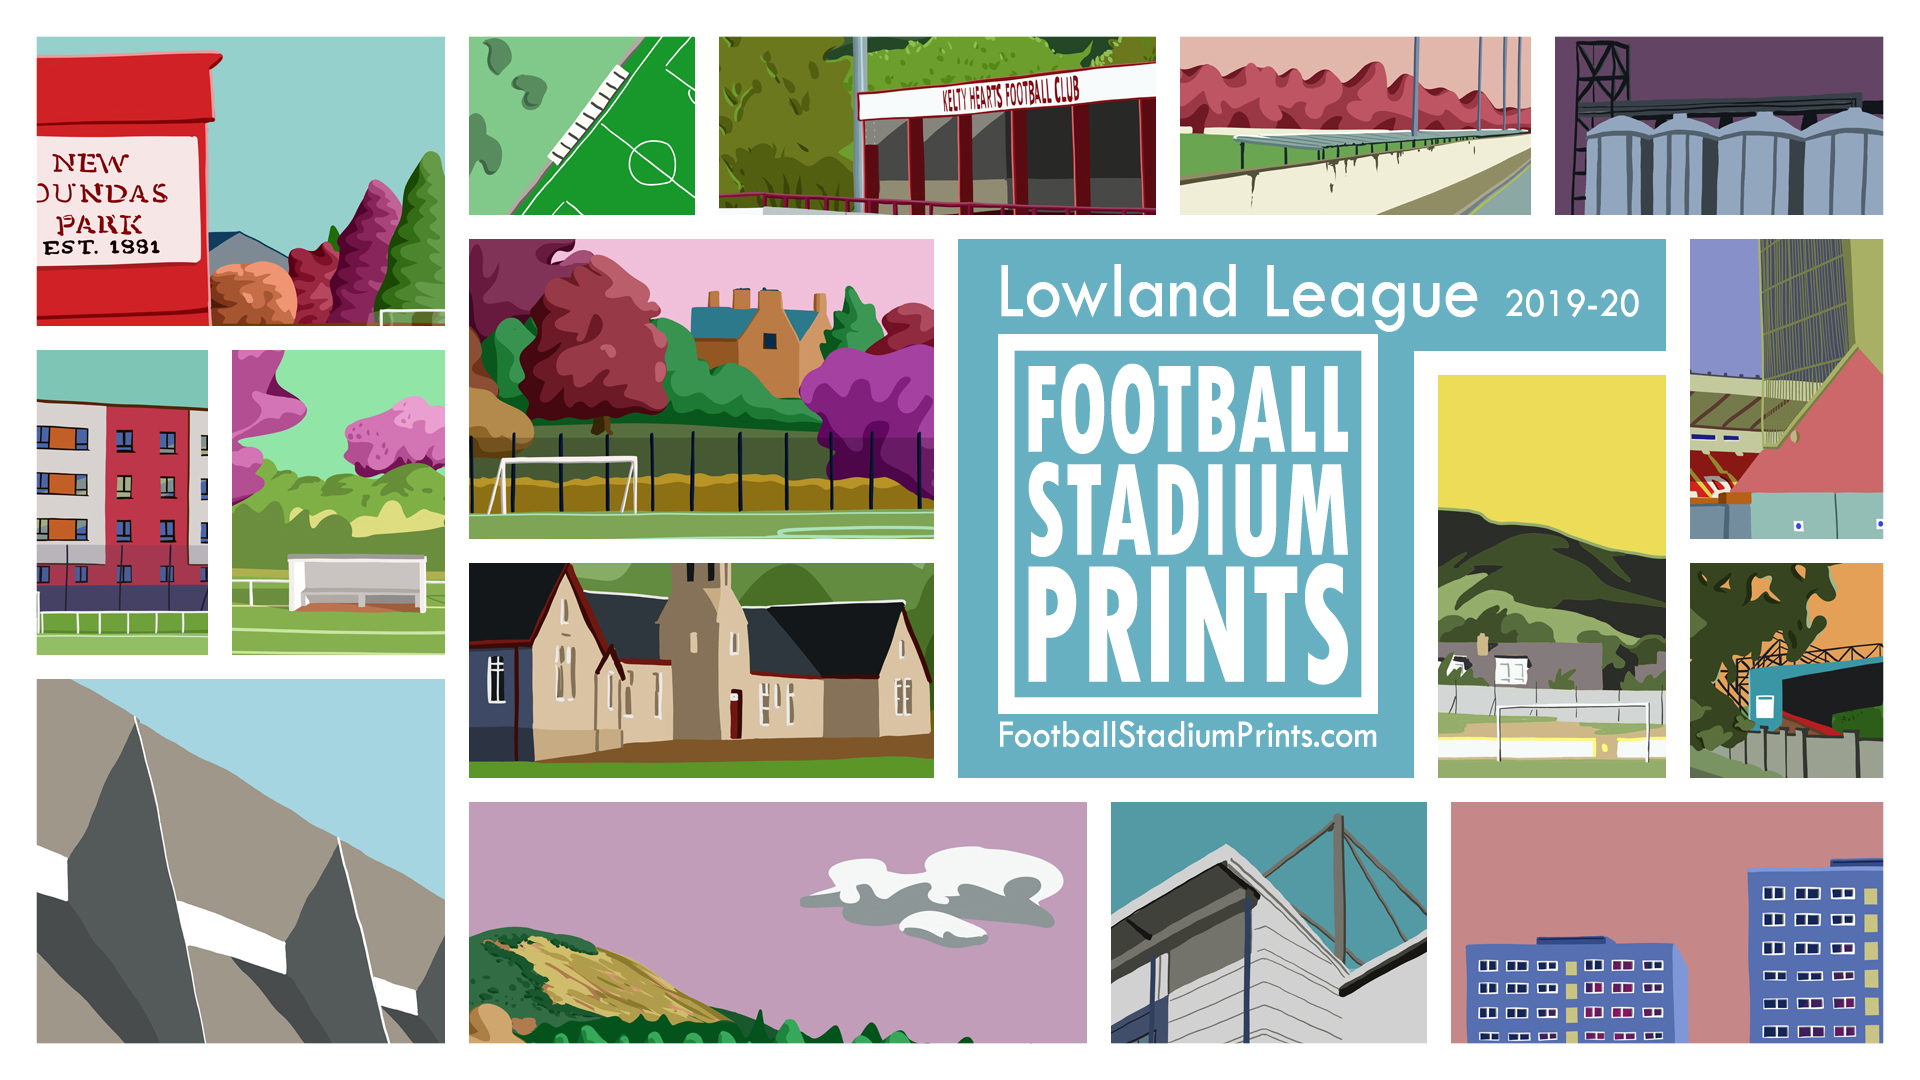 Scottish Lowland Football League 2019/20